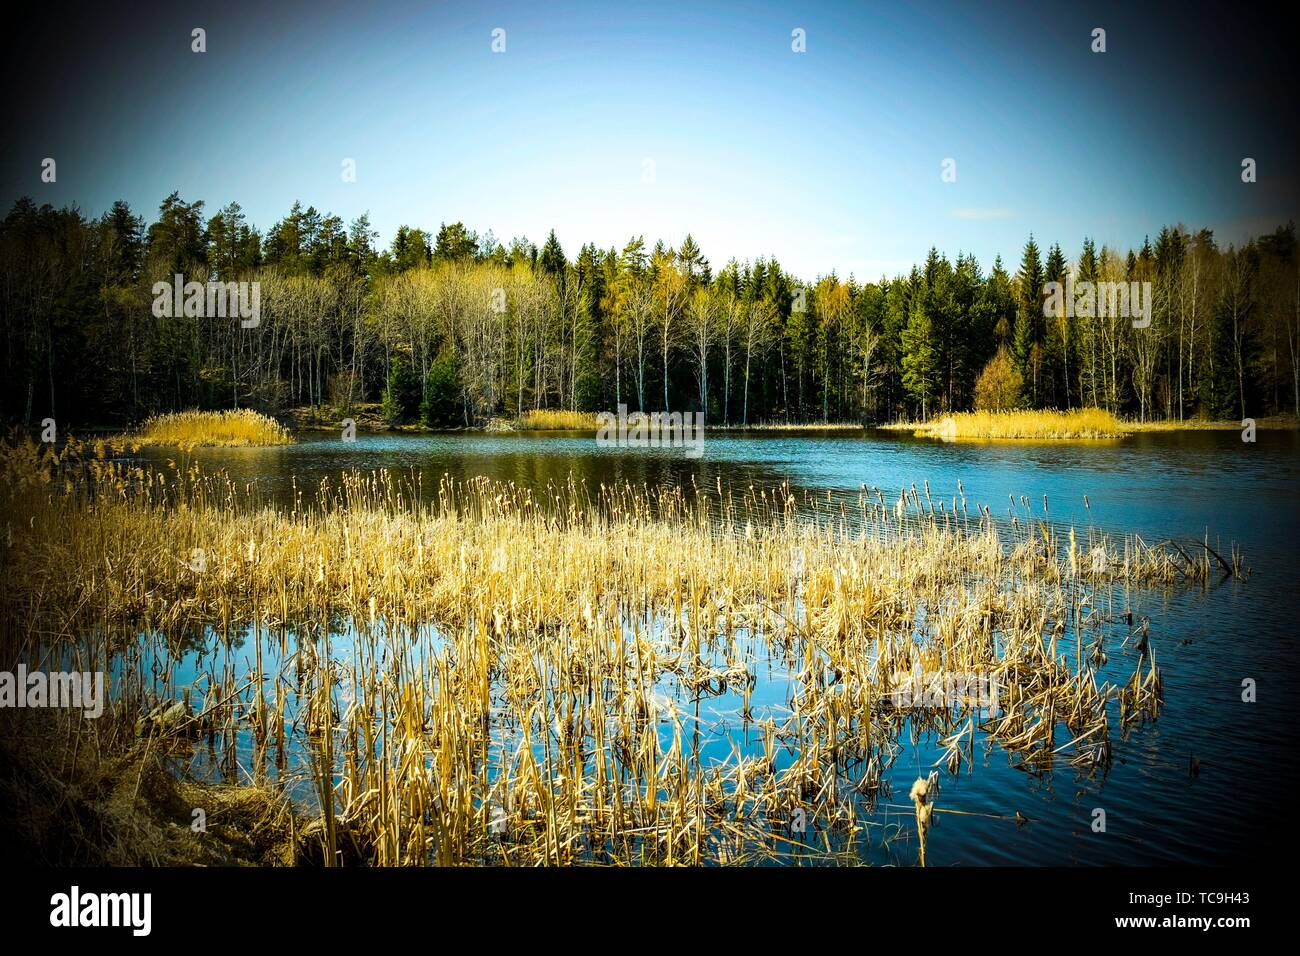 Lake in Sweden. - Stock Image